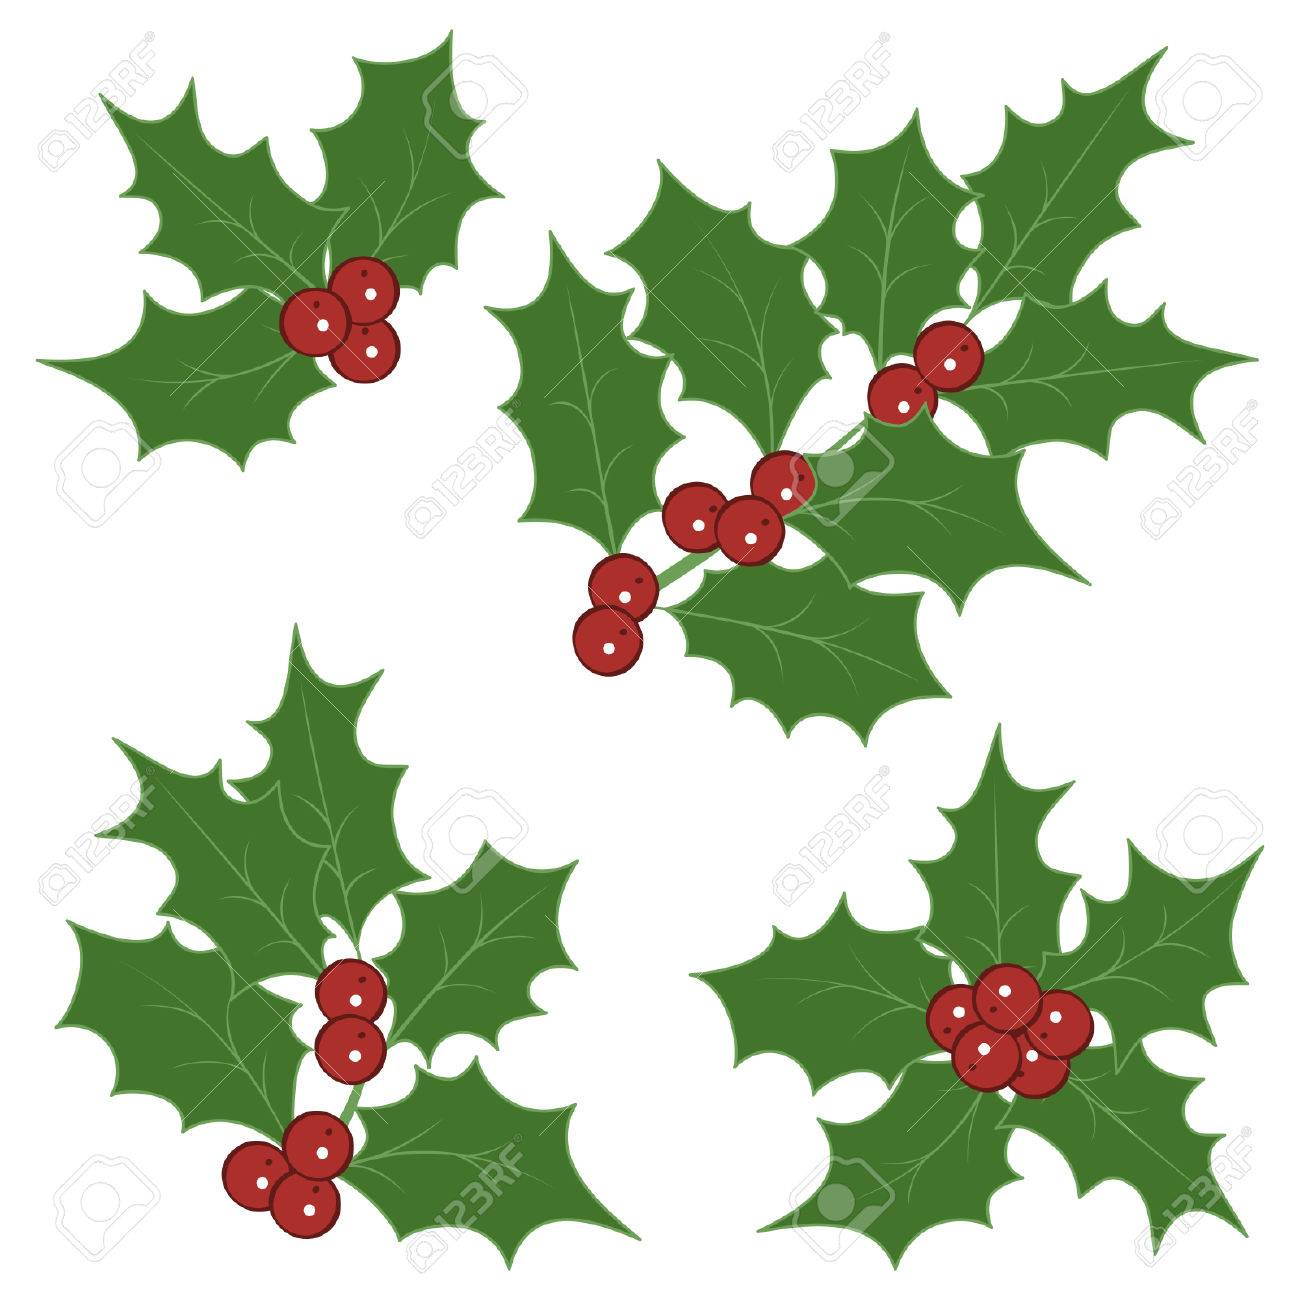 holly sprigs for christmas decorations stock vector 32375881